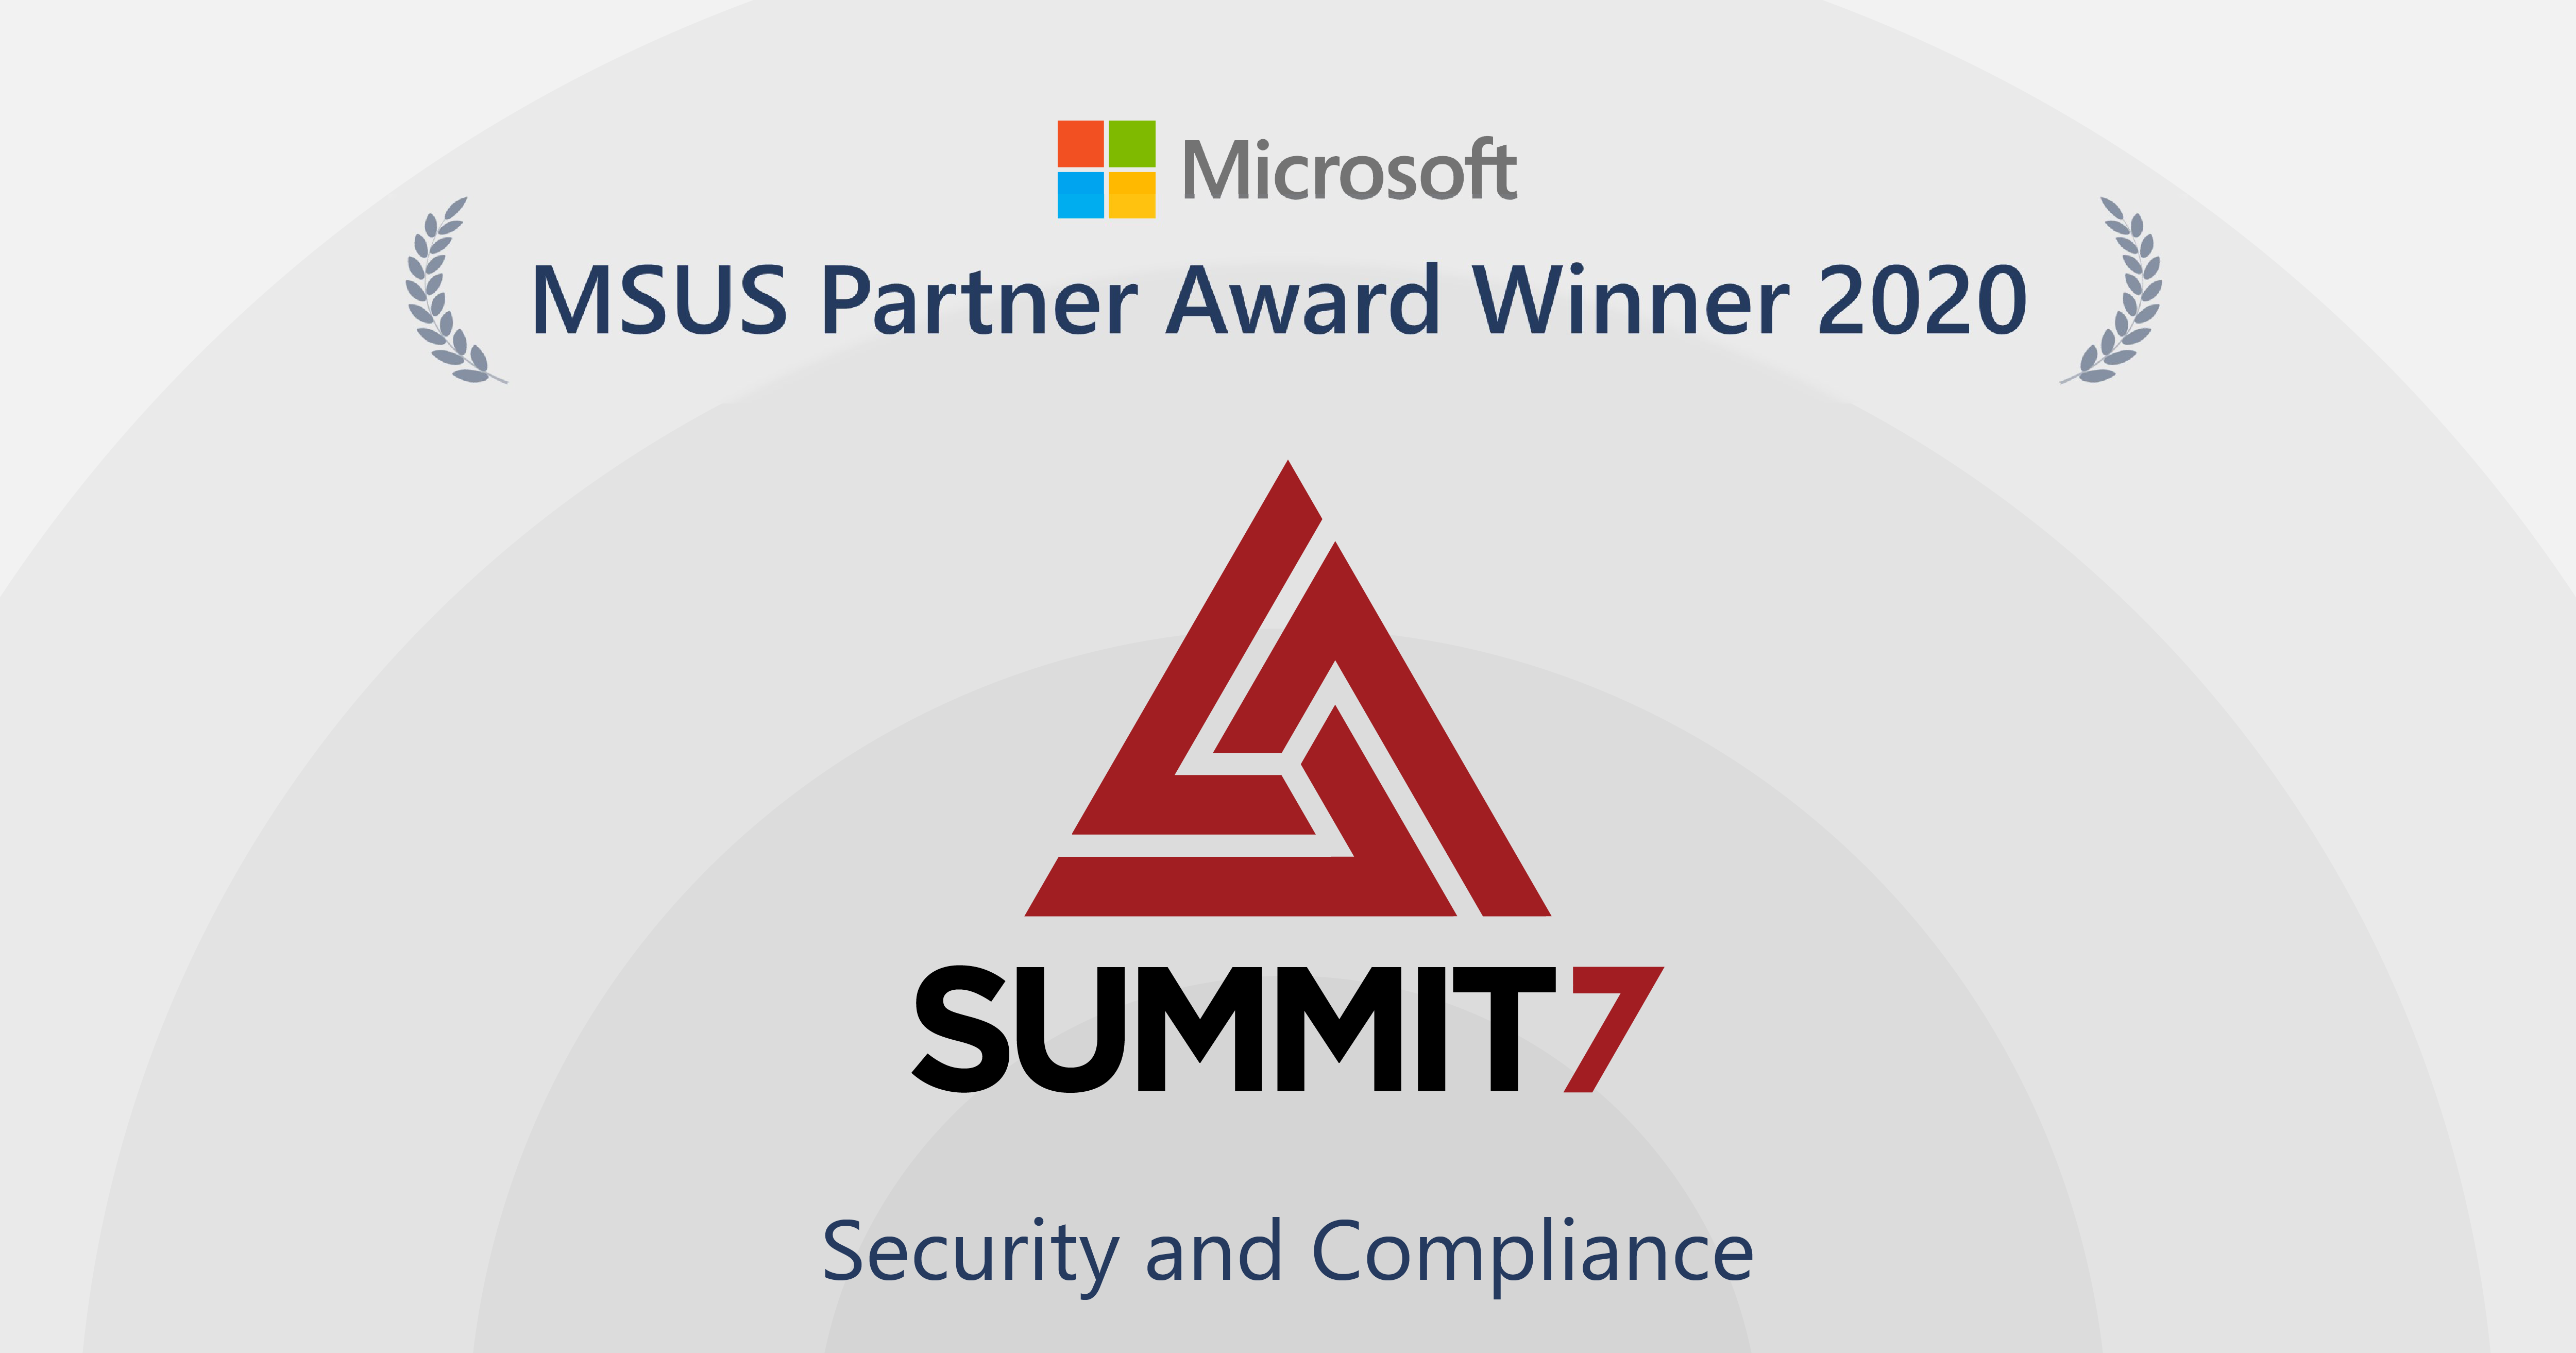 Summit 7 Systems 2020 MSUS Partner Award Winner - Security and Compliance